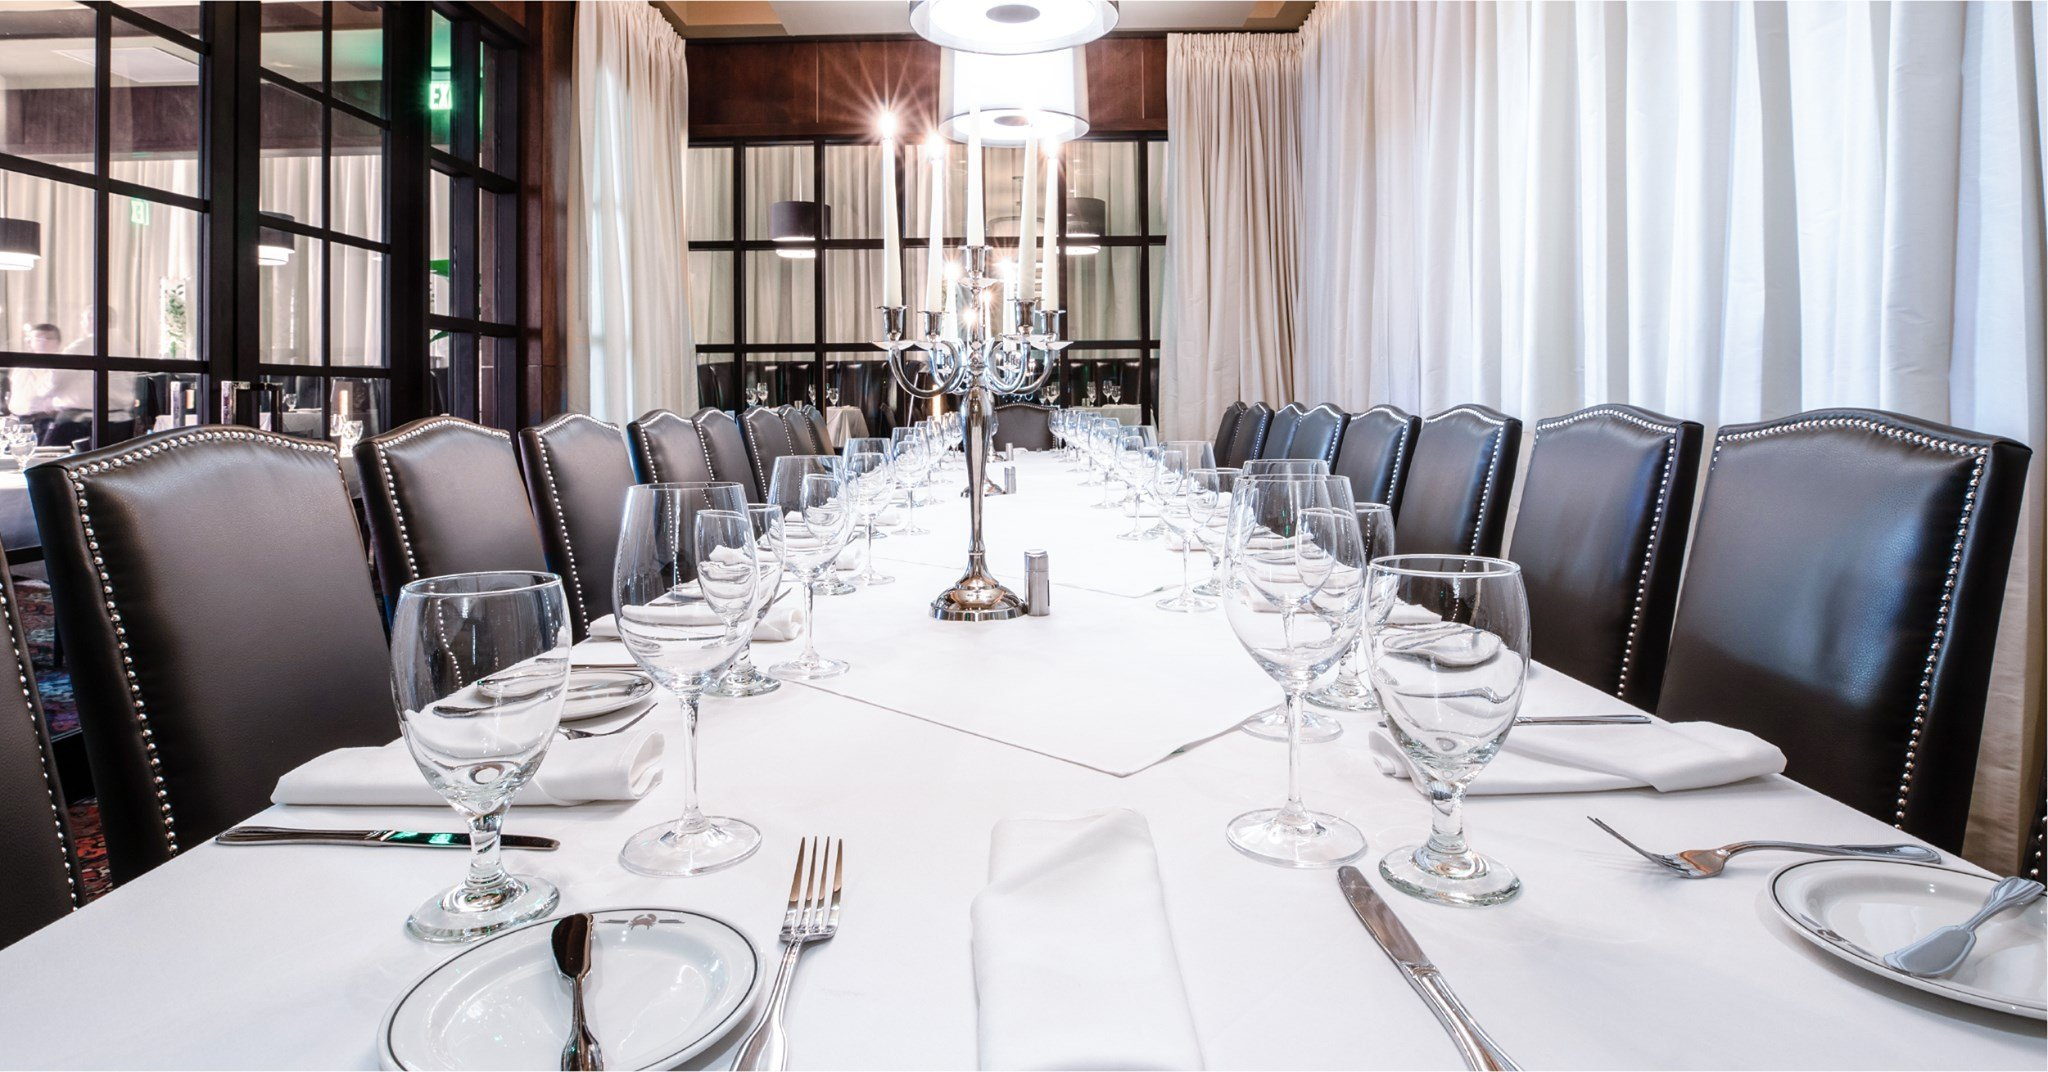 Big Deal Room - private dining room at the Rosemont location